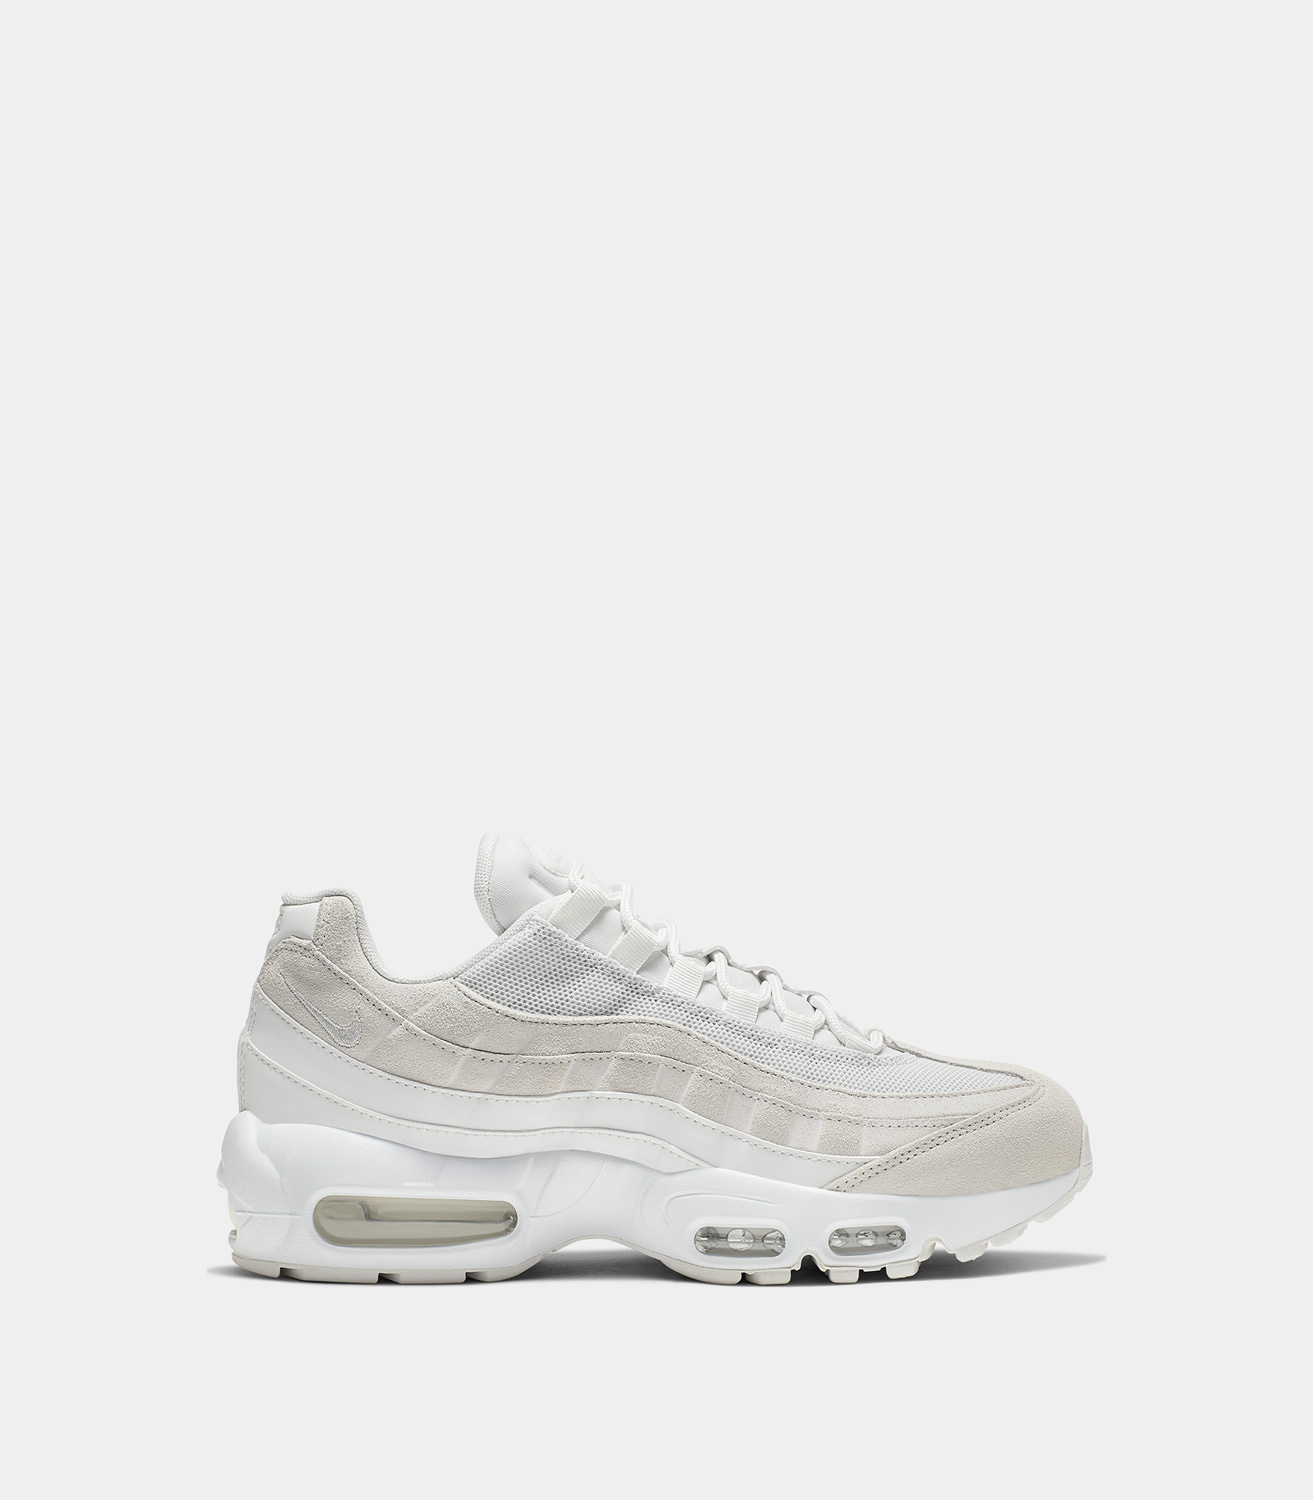 new arrival 0b8e0 f4a43 NIKE  AIR MAX 95 PRM SNEAKERS COLOR WHITE